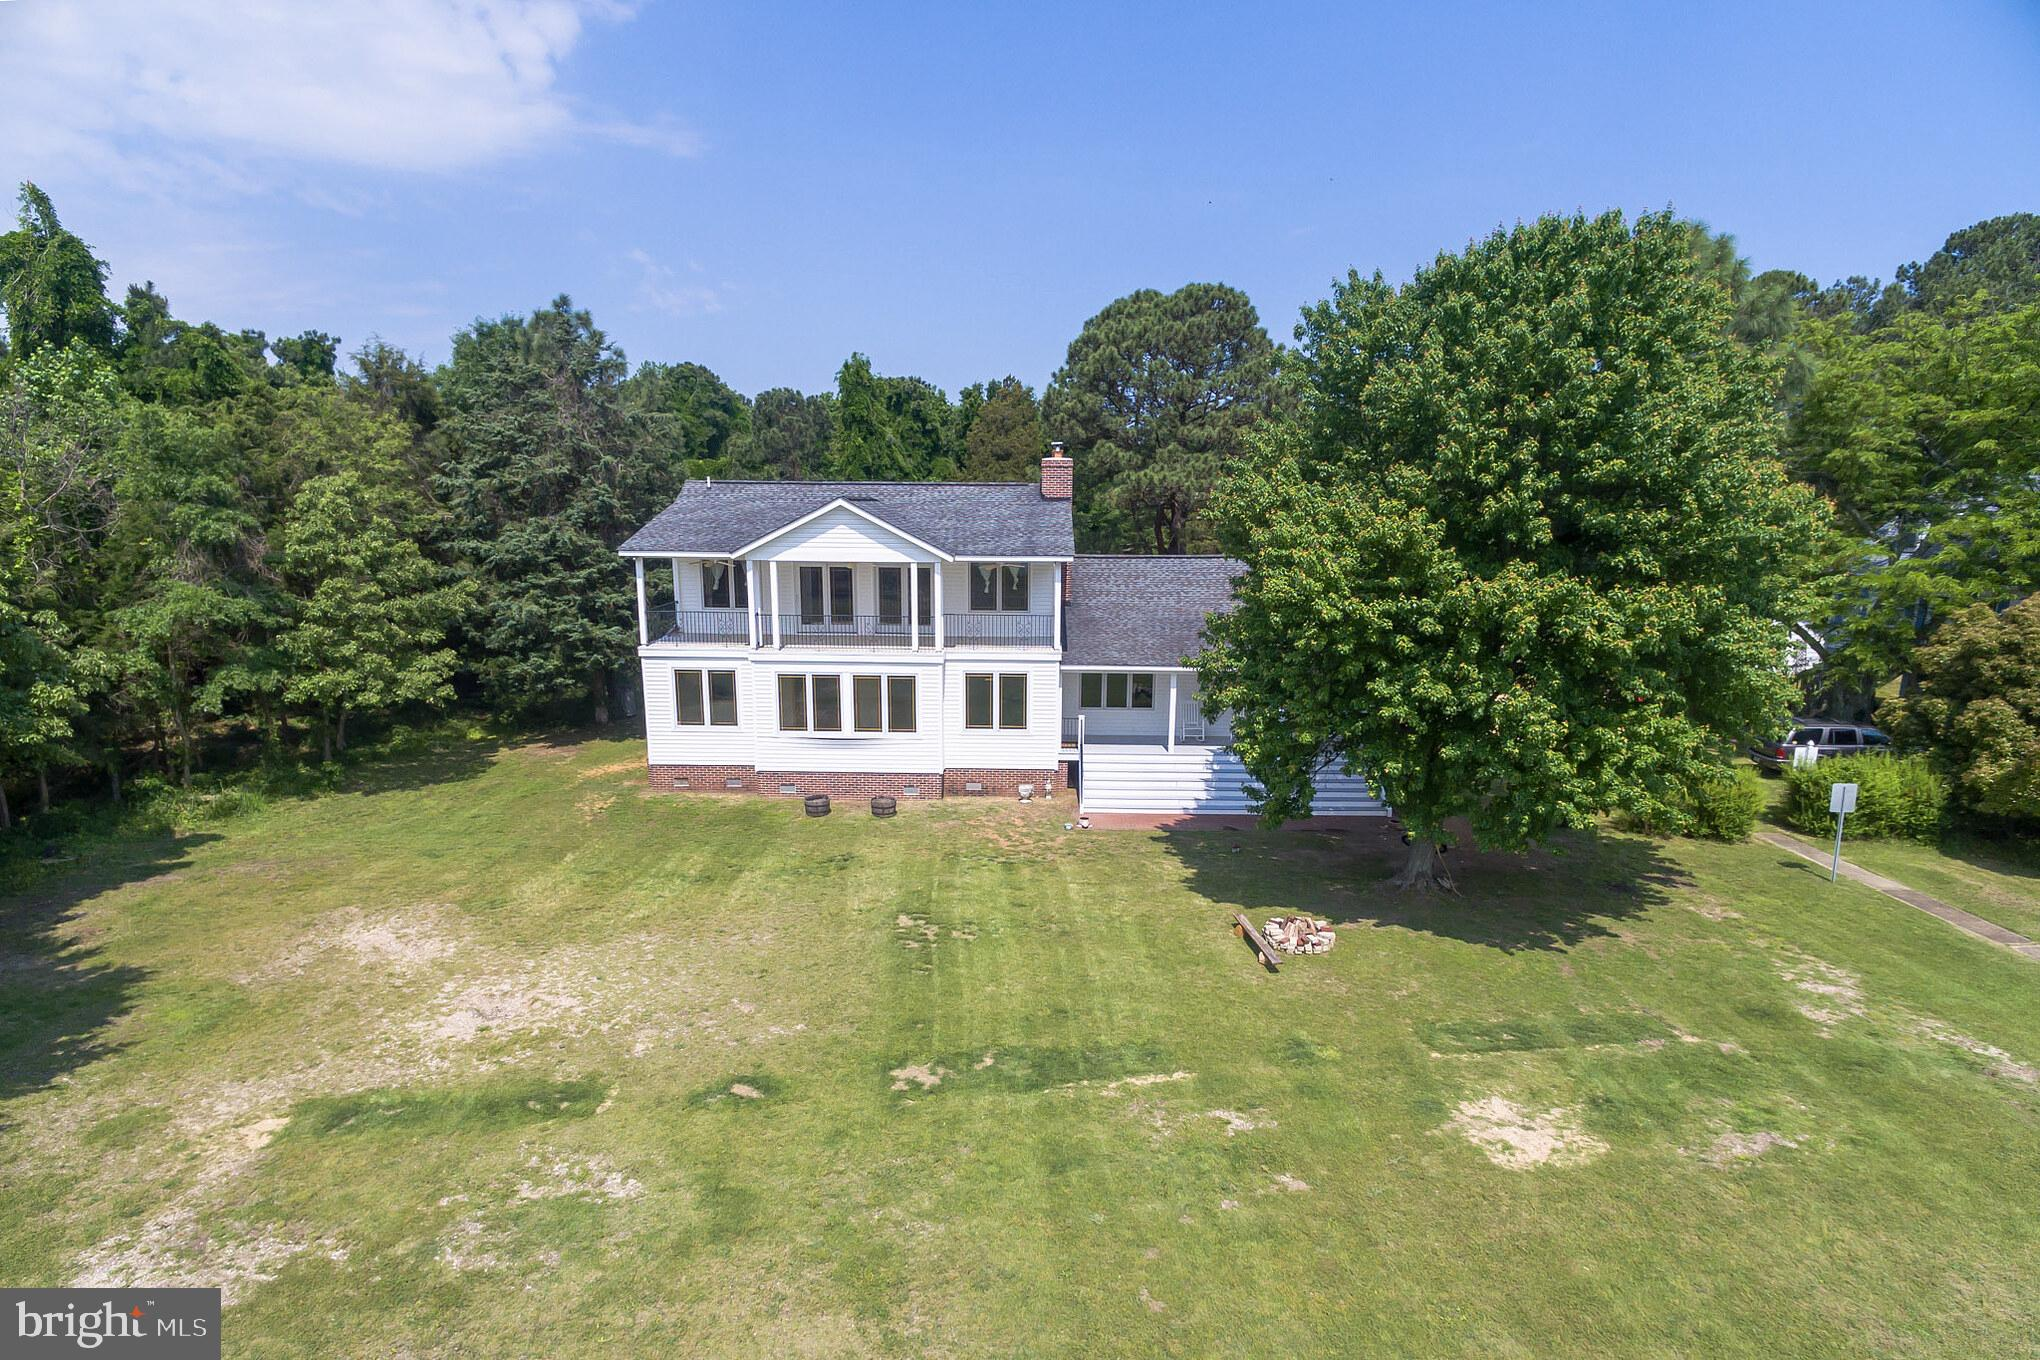 11029 PARK DRIVE, LUSBY, MD 20657